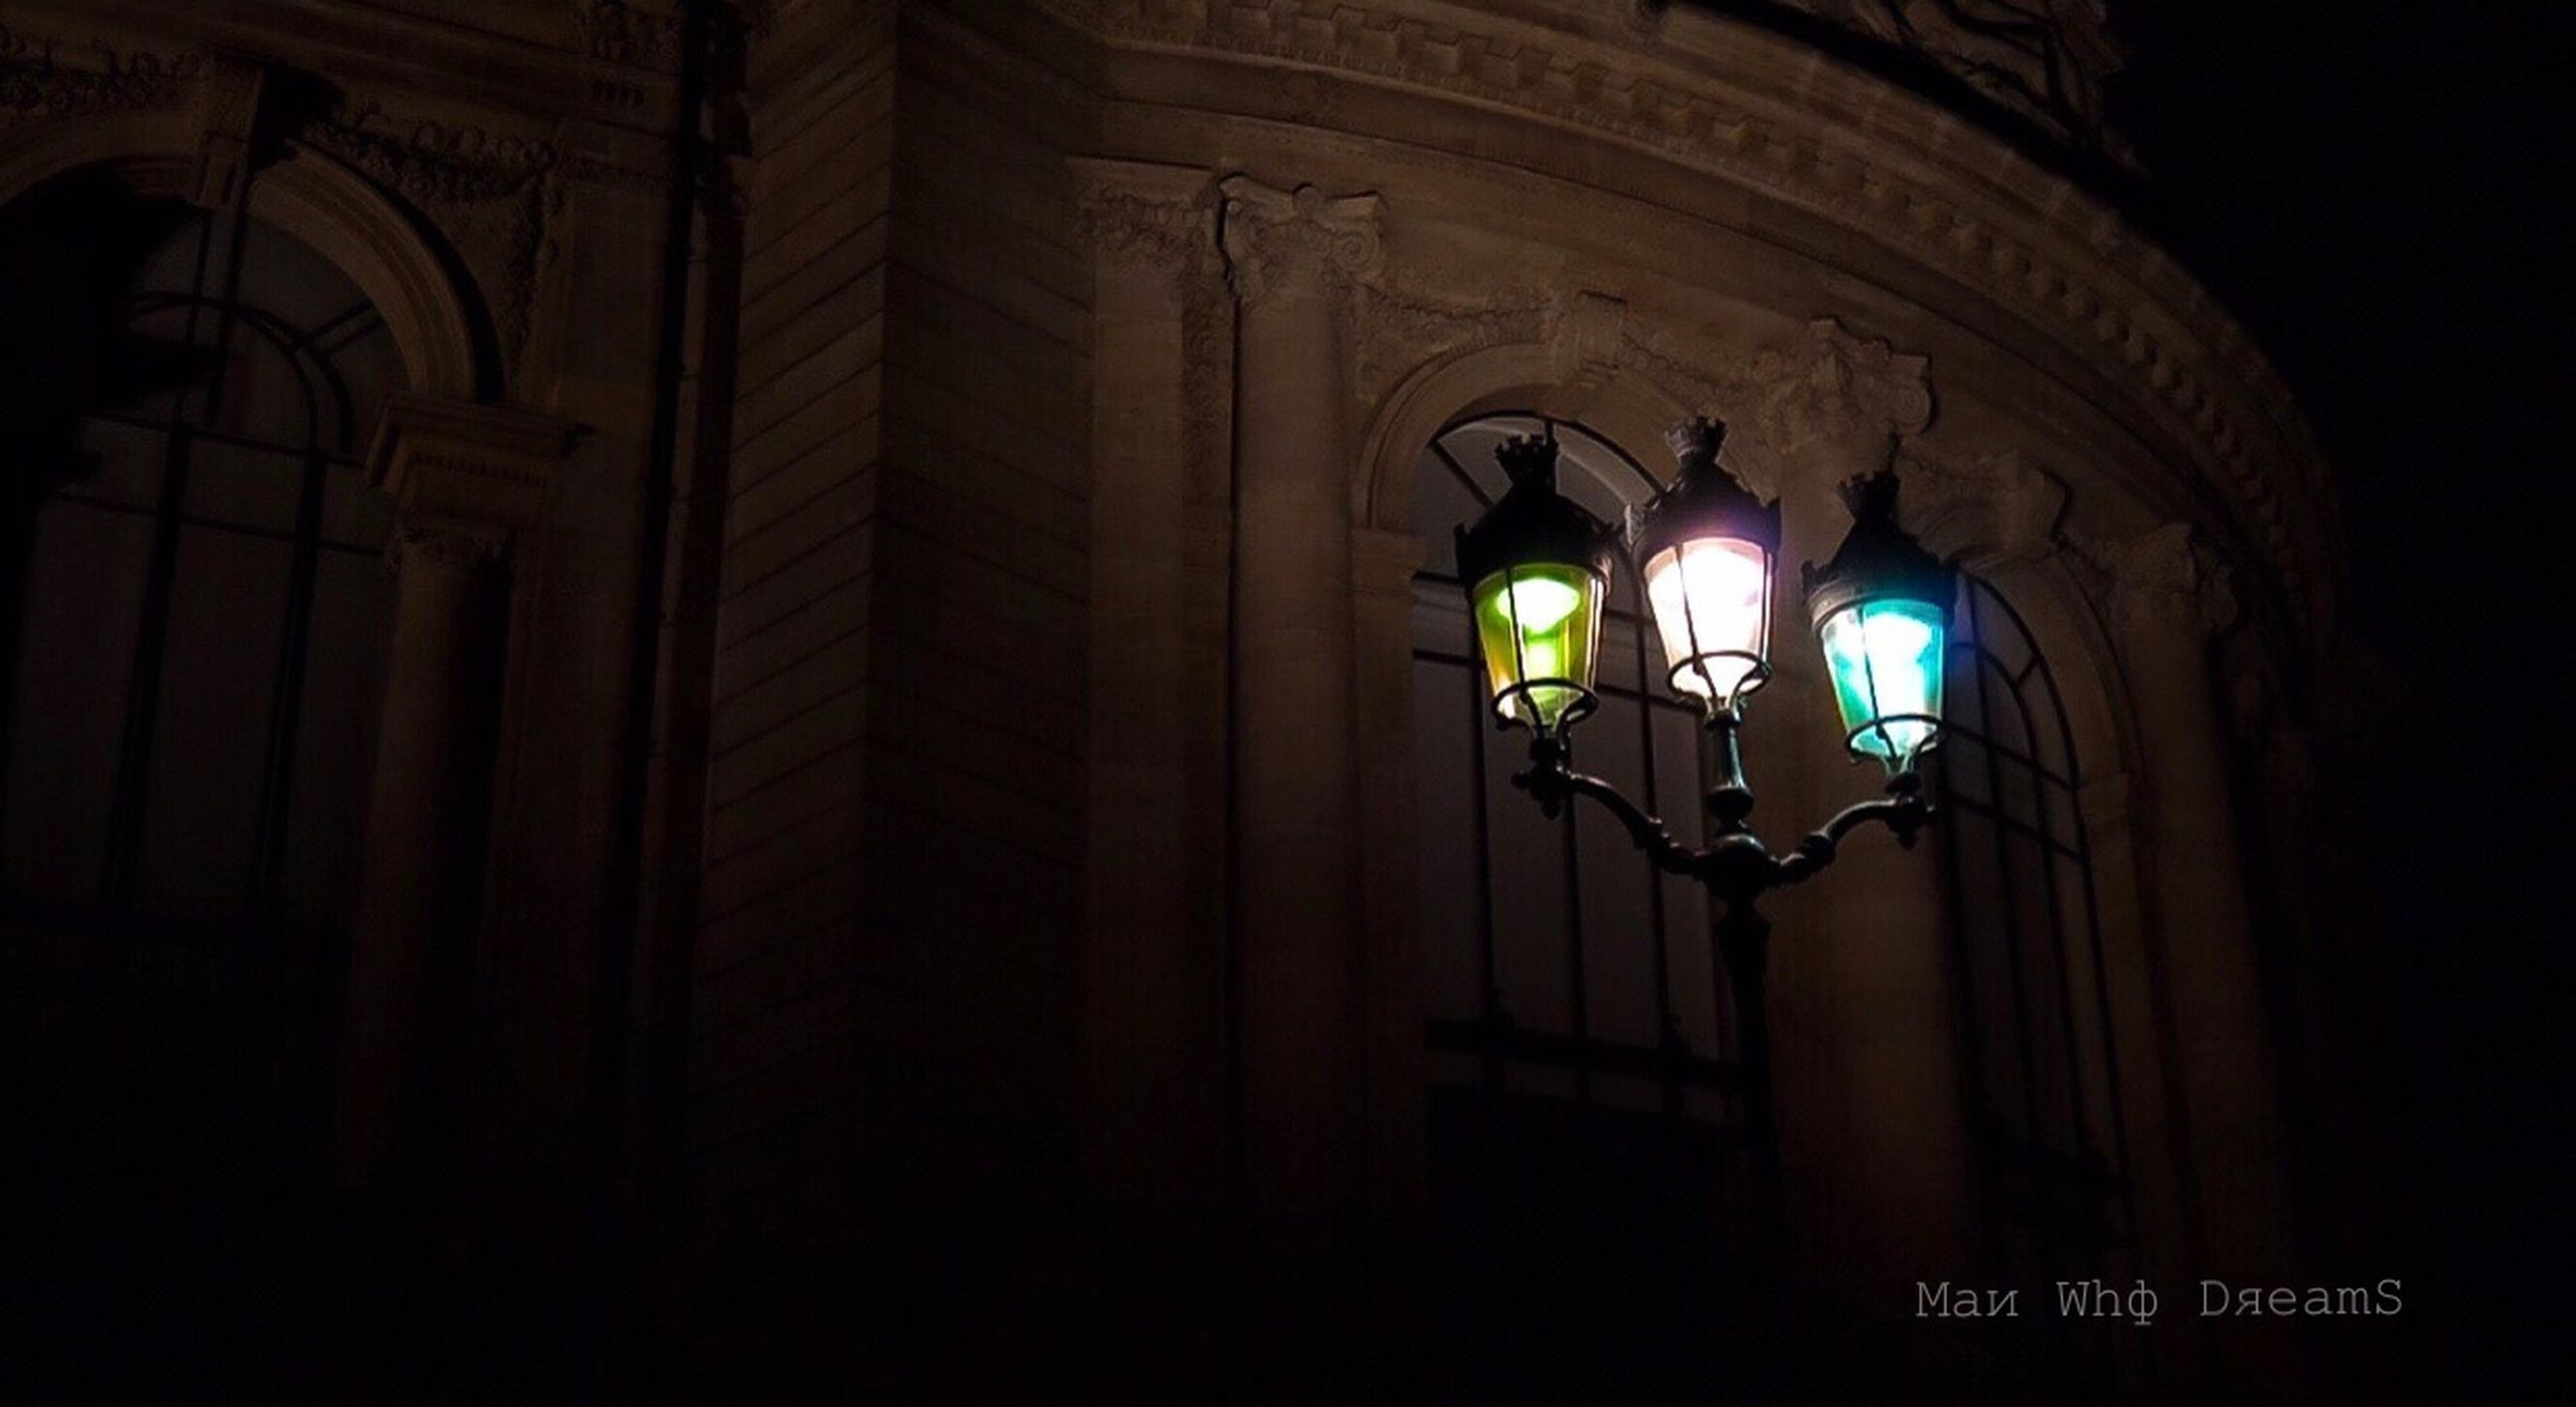 illuminated, architecture, lighting equipment, built structure, night, building, indoors, no people, low angle view, dark, arch, wall - building feature, place of worship, glowing, electricity, wall, text, light, electric lamp